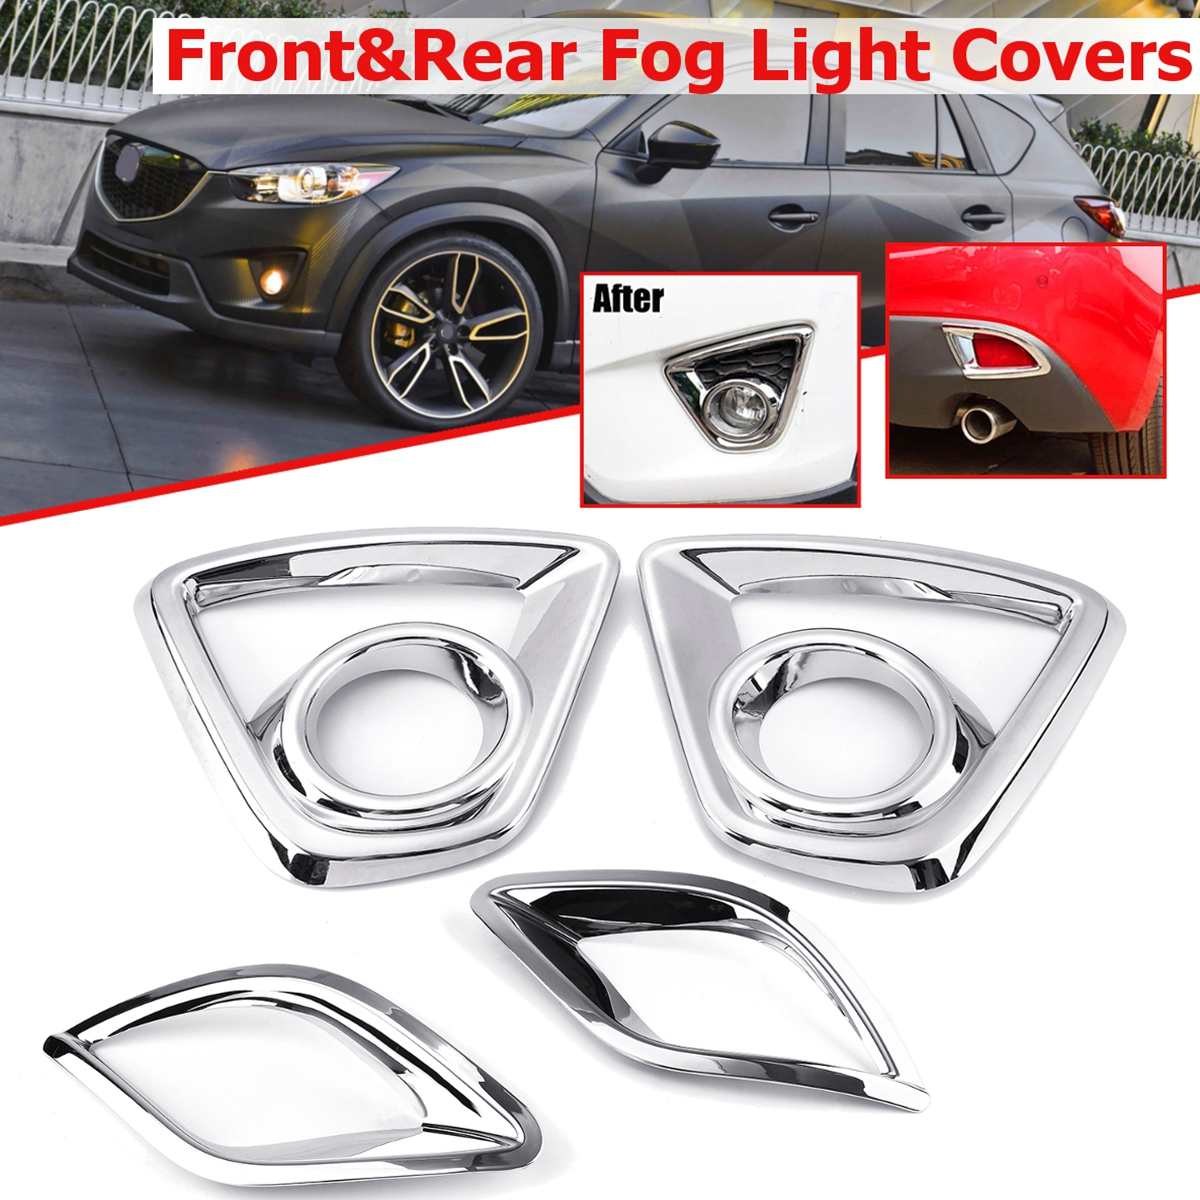 Bumper <font><b>Fog</b></font> <font><b>light</b></font> Chrome Garnish For <font><b>Mazda</b></font> Cx-5 <font><b>Cx5</b></font> 2013 2014 2015 2016 Car Rear Tail <font><b>Lights</b></font> Lamp Shade Frame Trim <font><b>Cover</b></font> Styling image